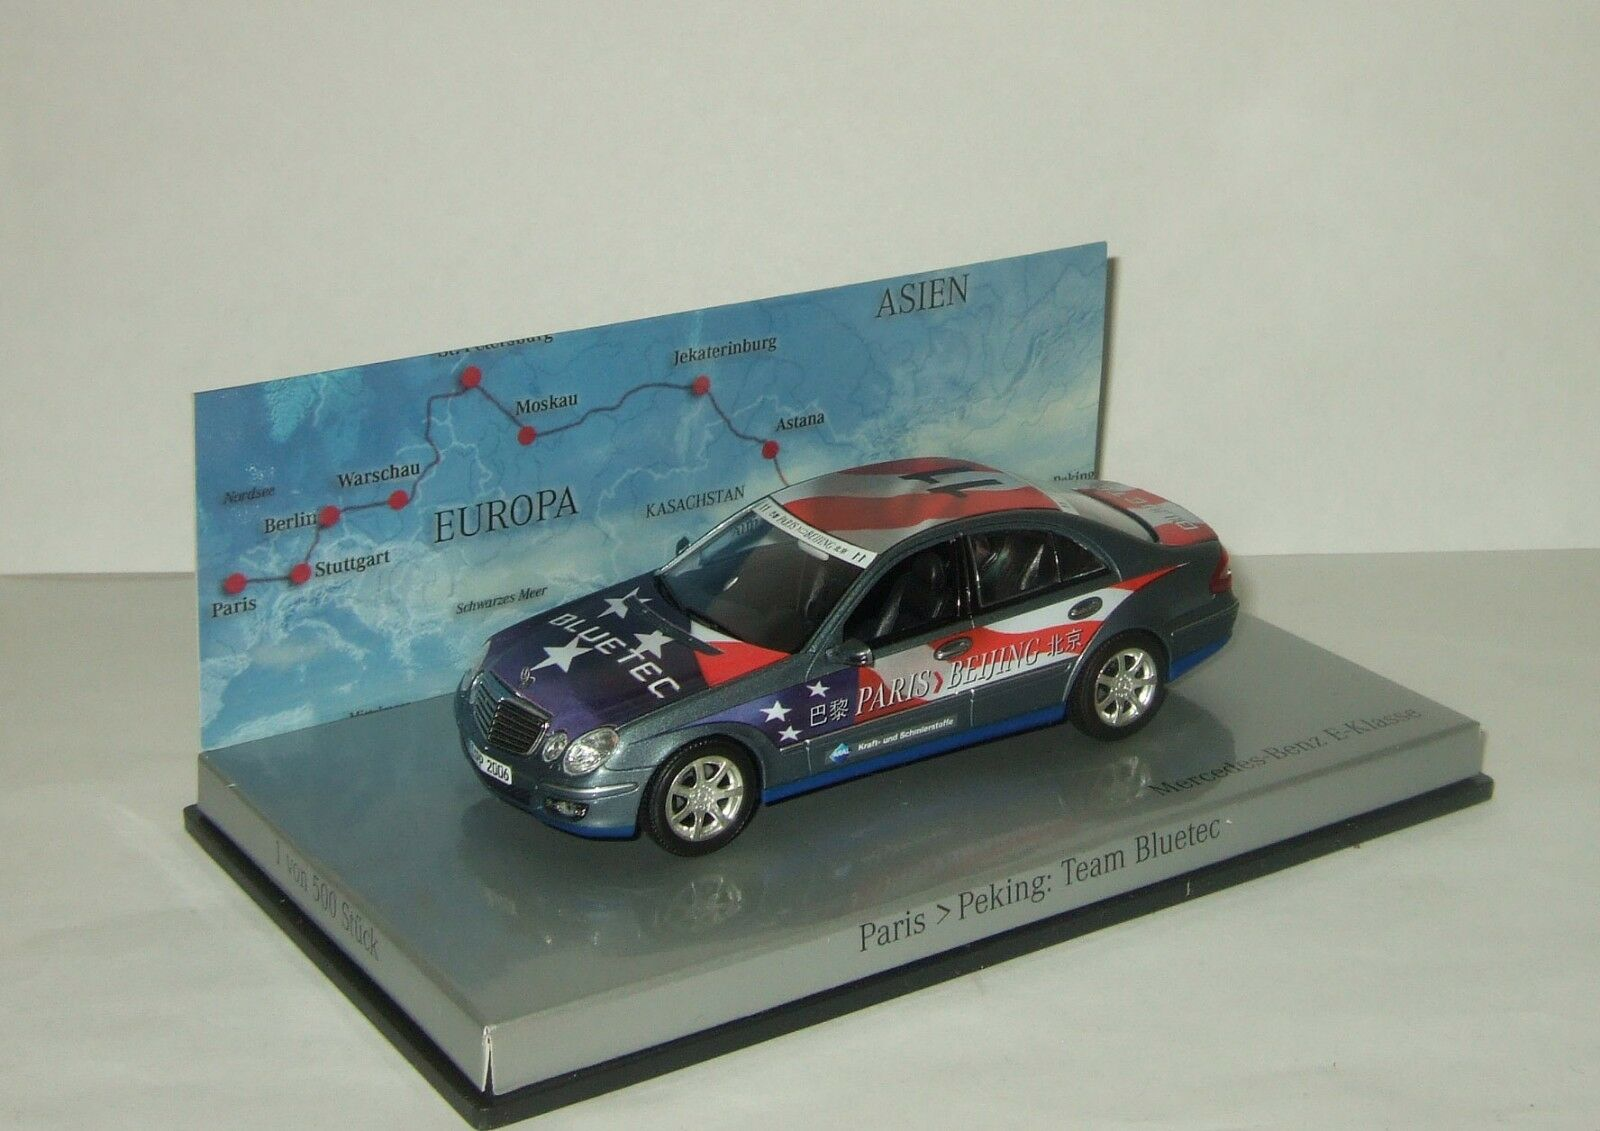 1 43 Minichamps Mercedes Benz W211 Paris Beijing Blautec team 2007 B66962267